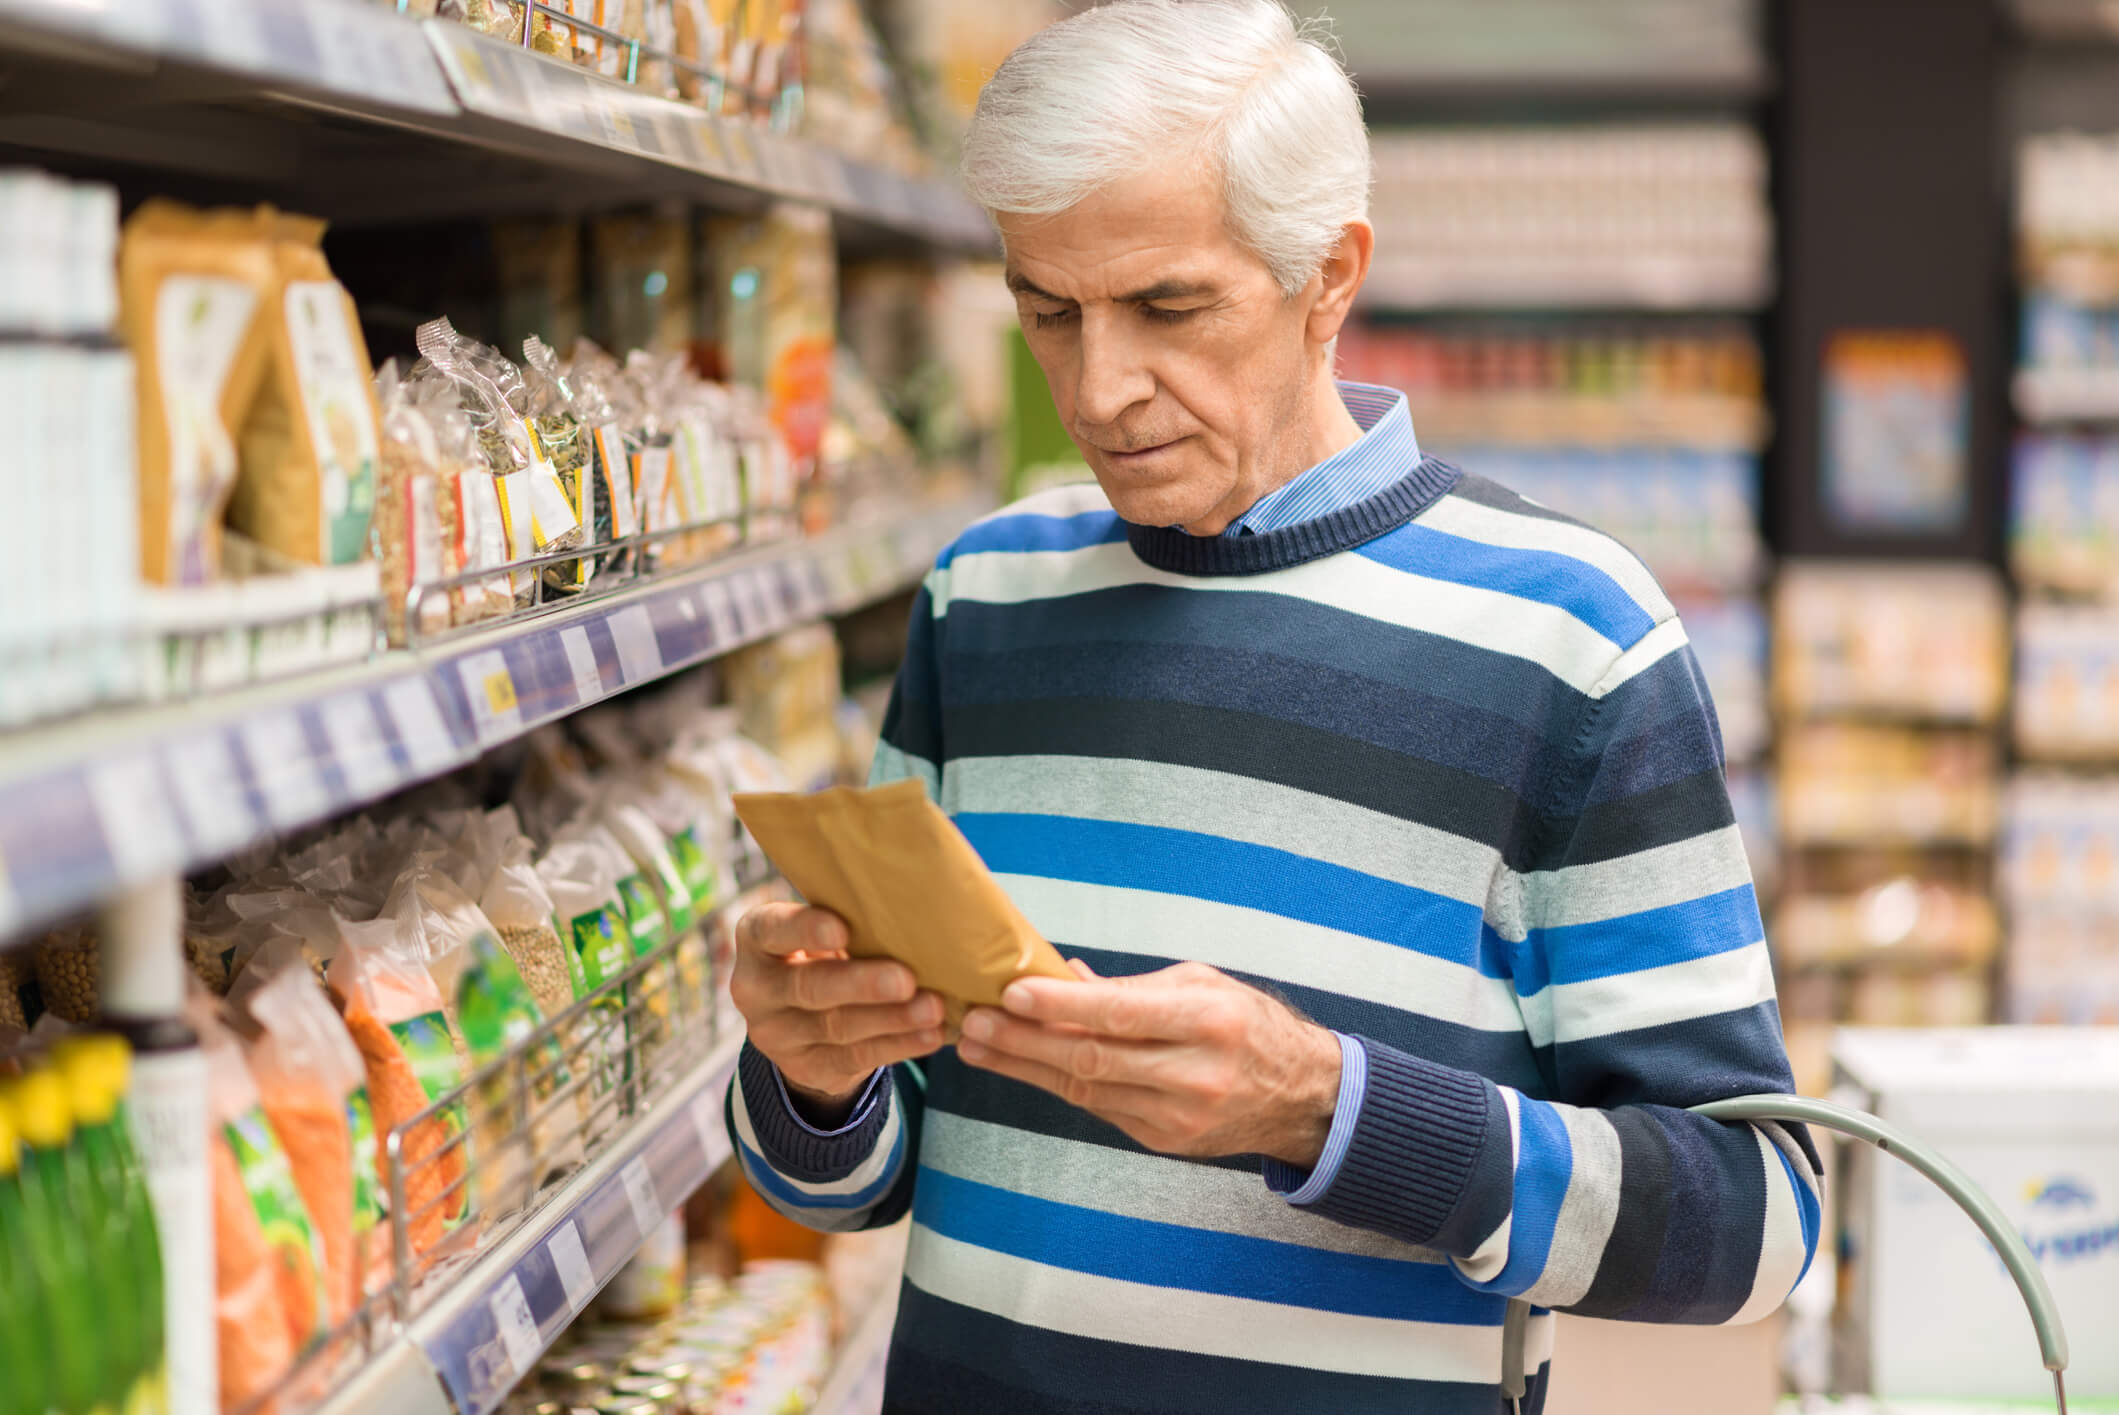 Older man examining nutrition label in grocery store